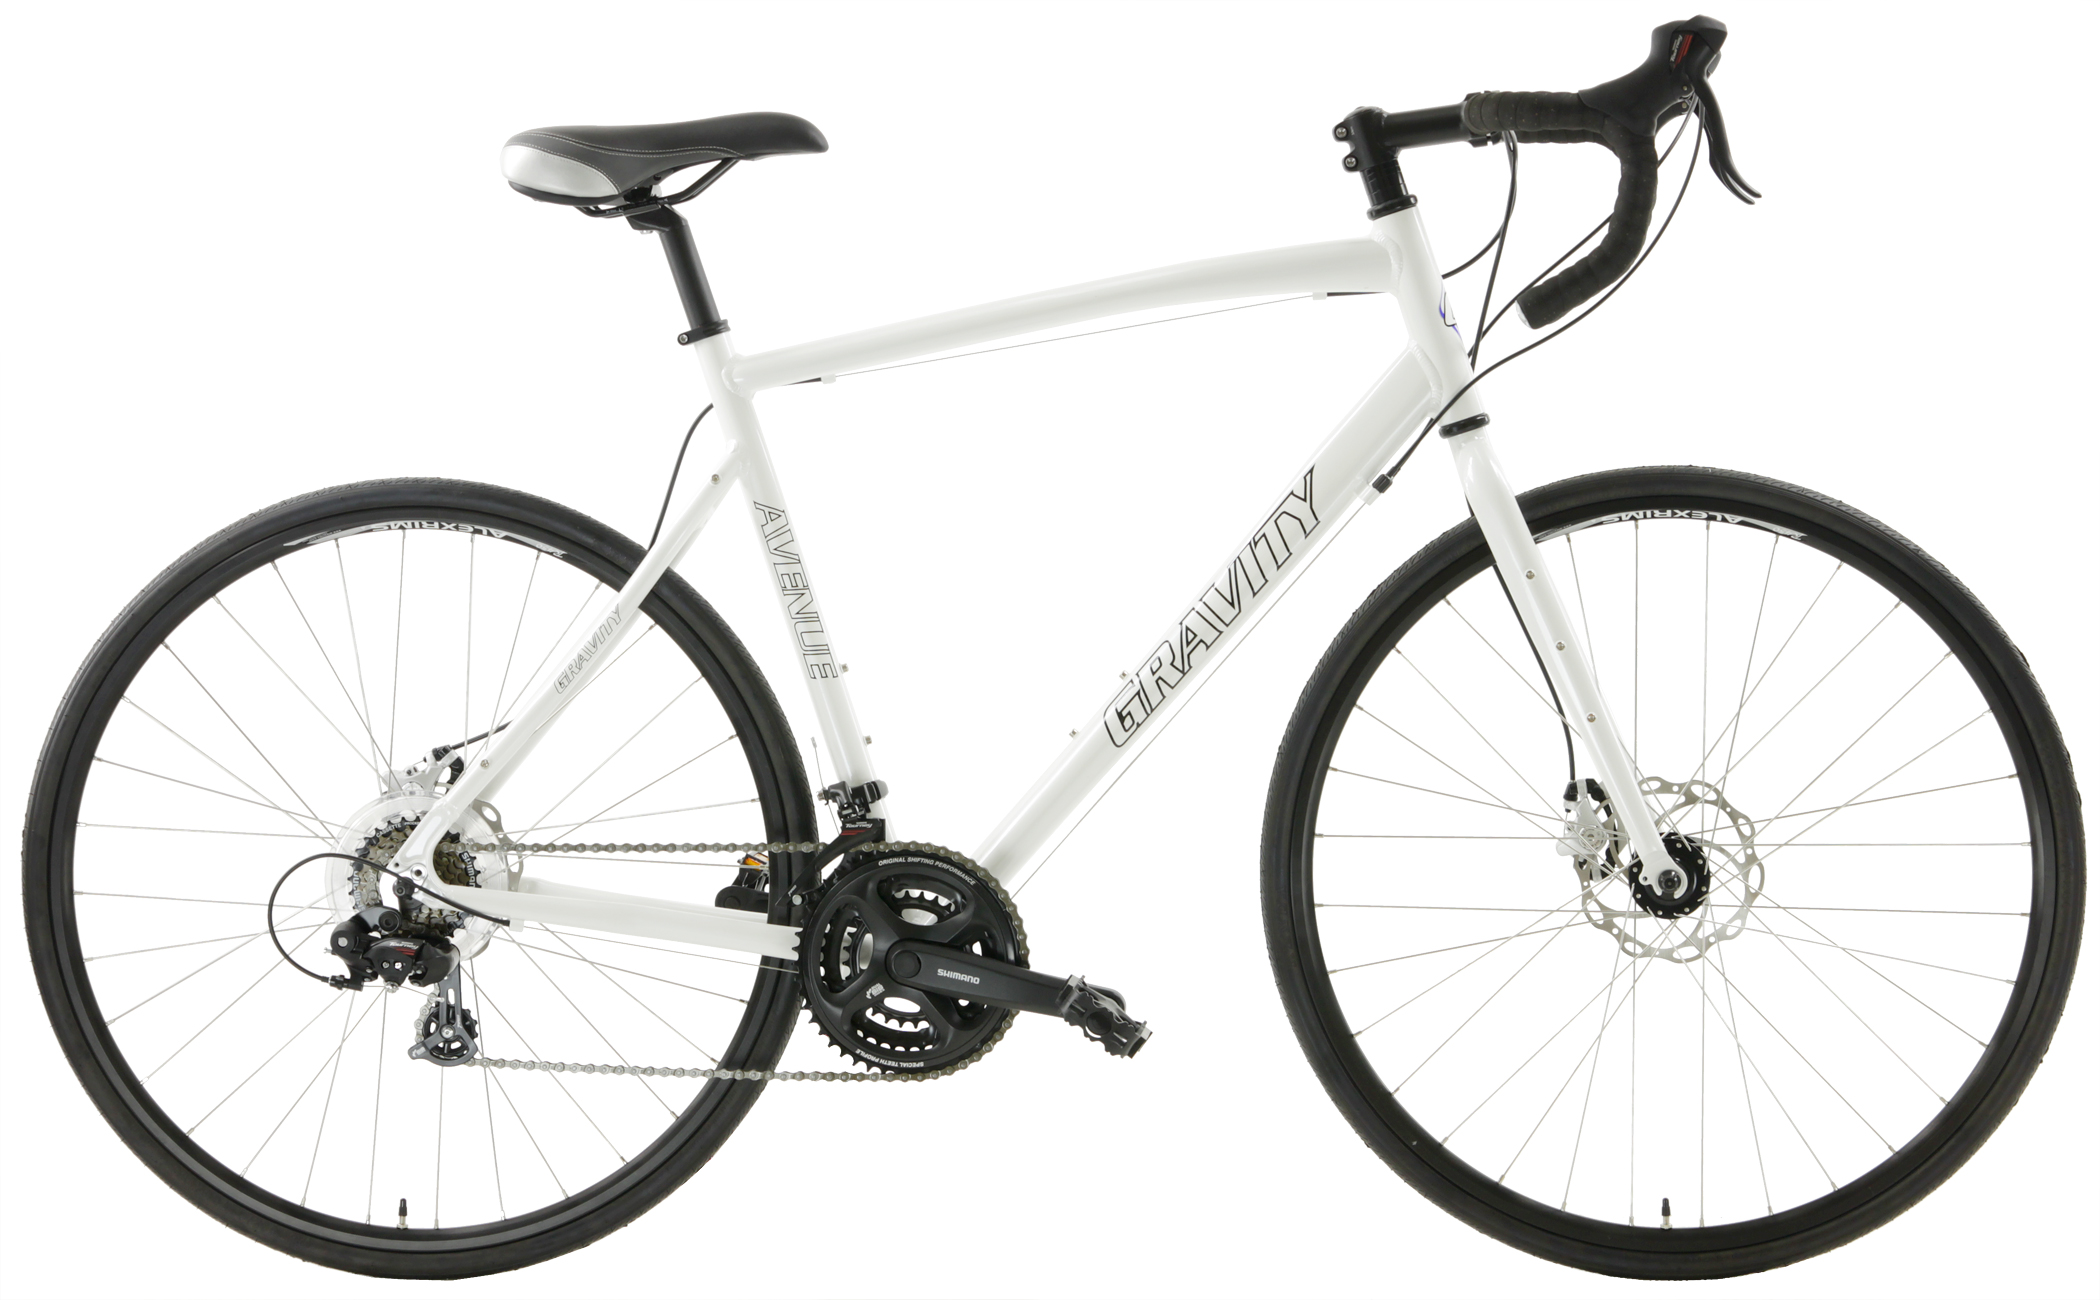 Save up to 60% off new Disc Brake Road Bikes - Gravity Avenue D ...